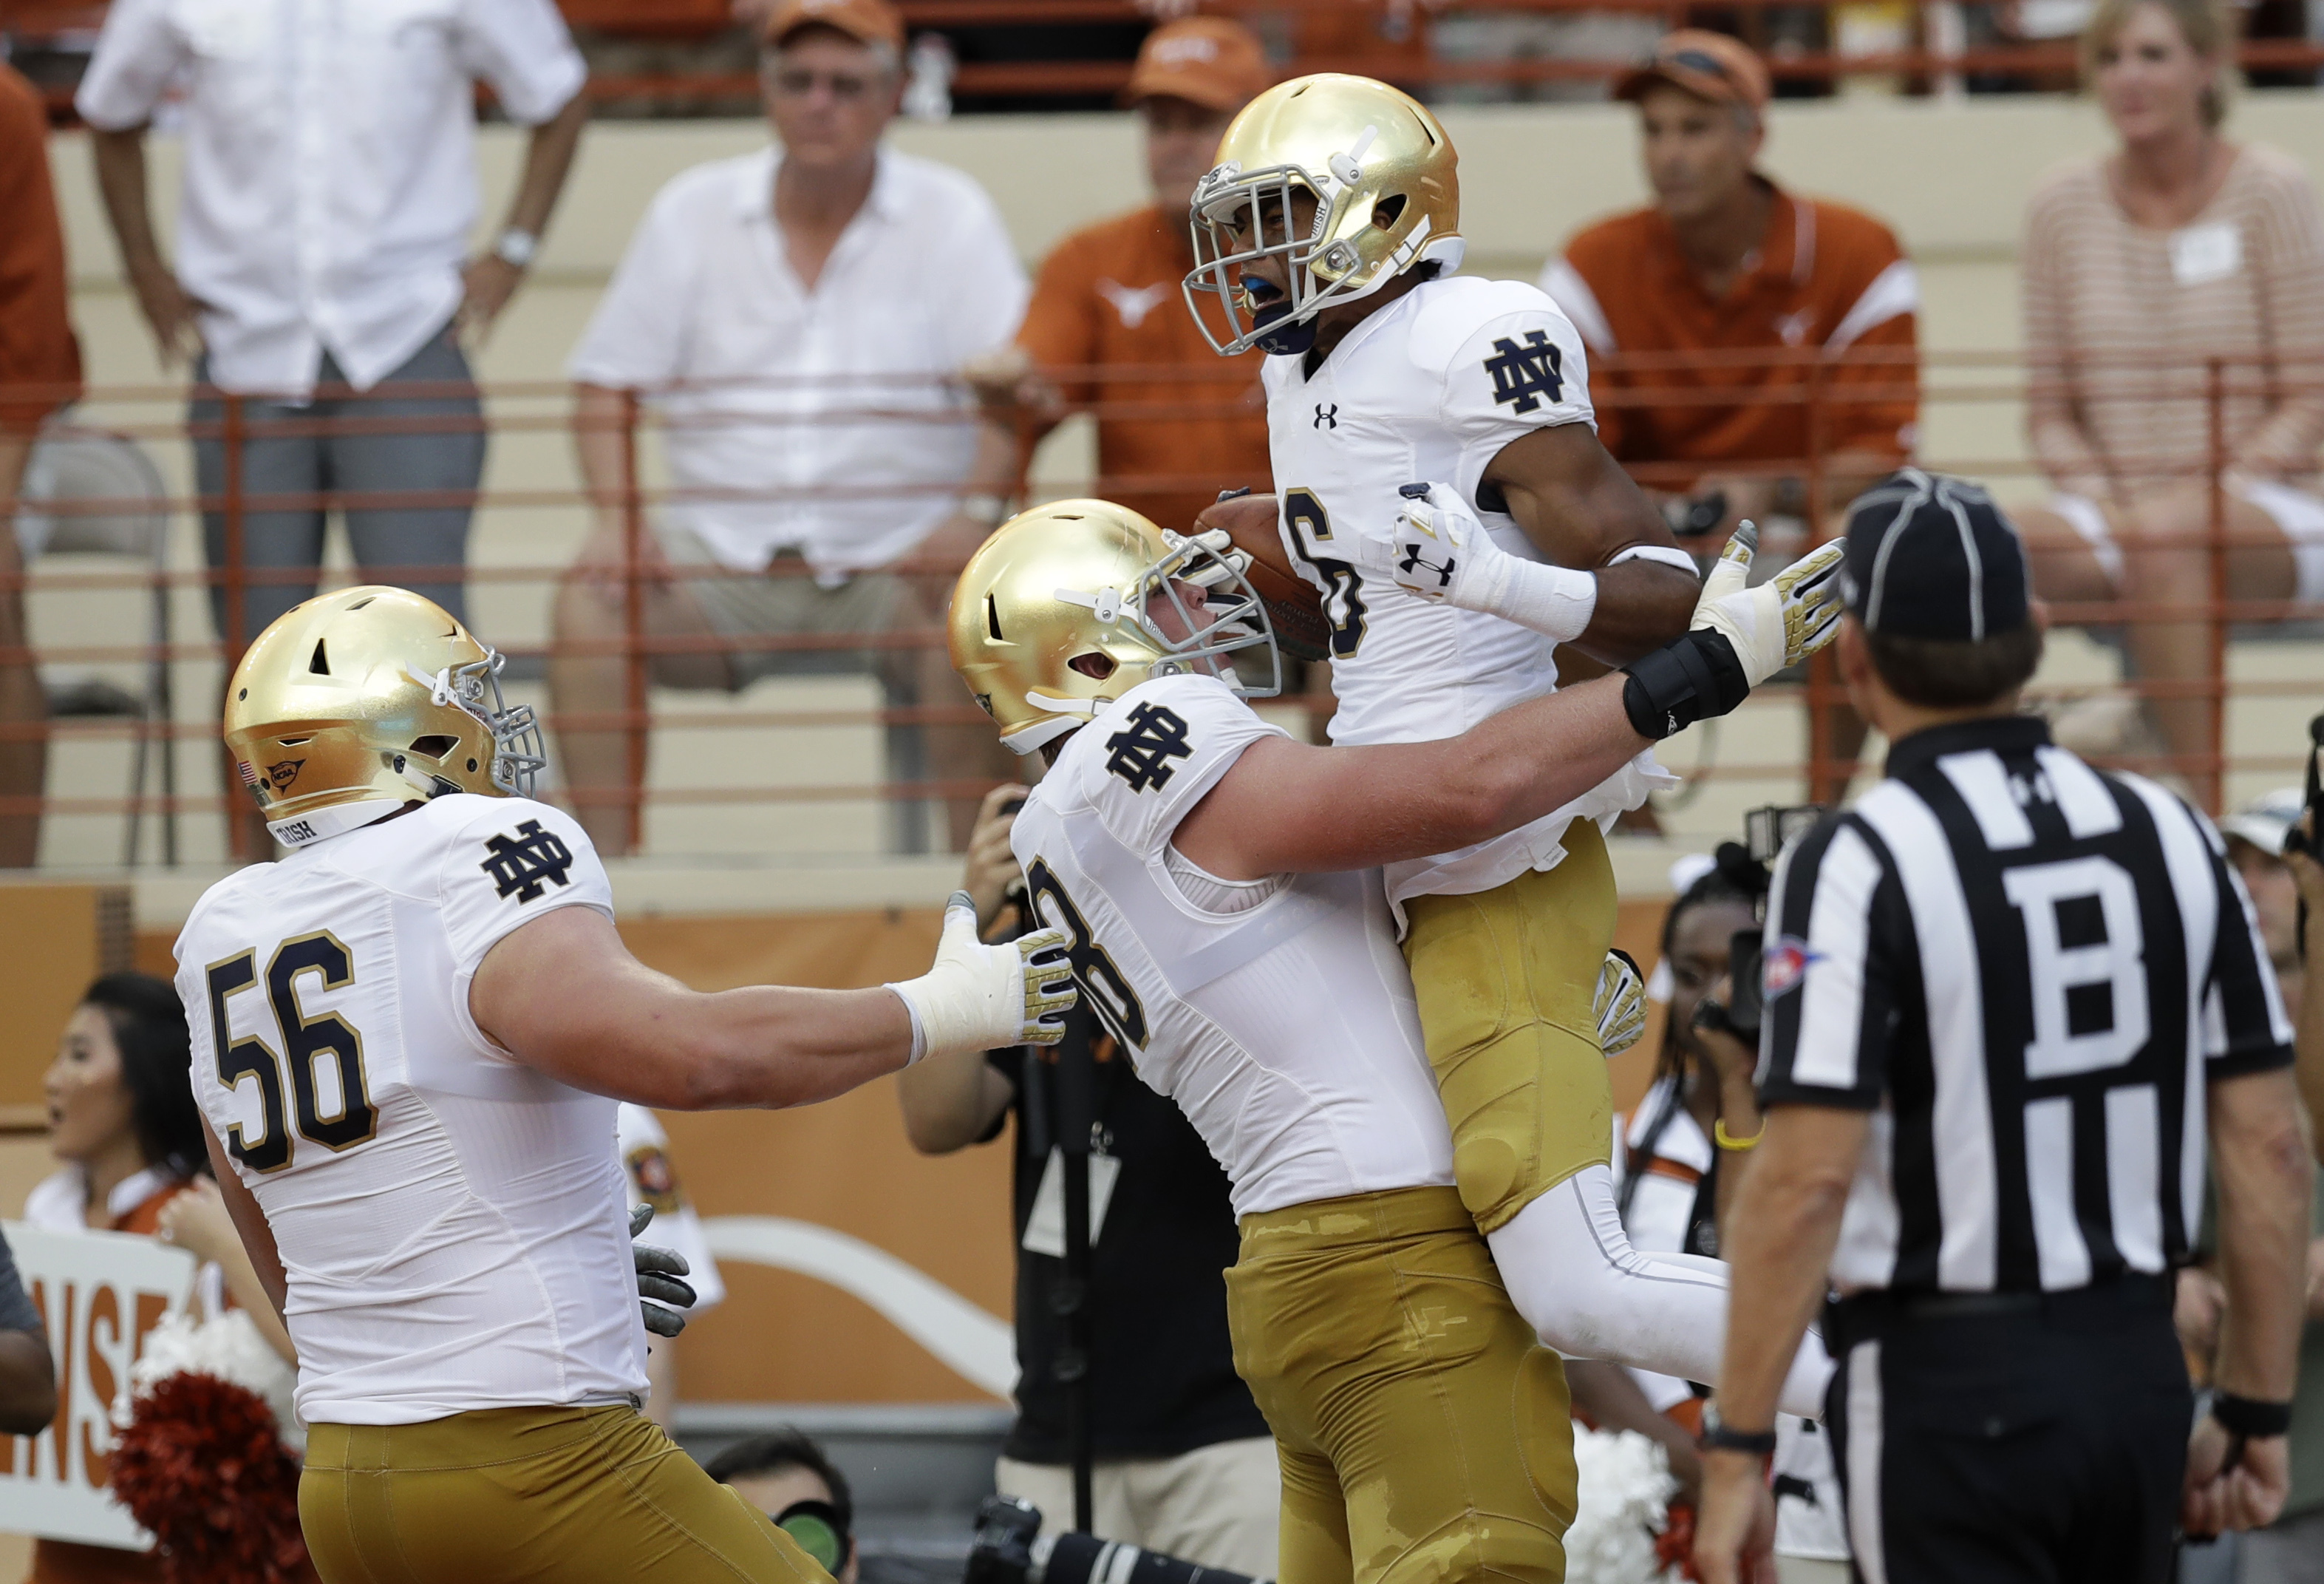 Notre Dame wide receiver Equanimeous St. Brown, right, celebrates with teammates after catching a 19-yard touchdown pass during the first half of an NCAA college football game against Texas, Sunday, Sept. 4, 2016, in Austin, Texas. (AP Photo/Eric Gay)